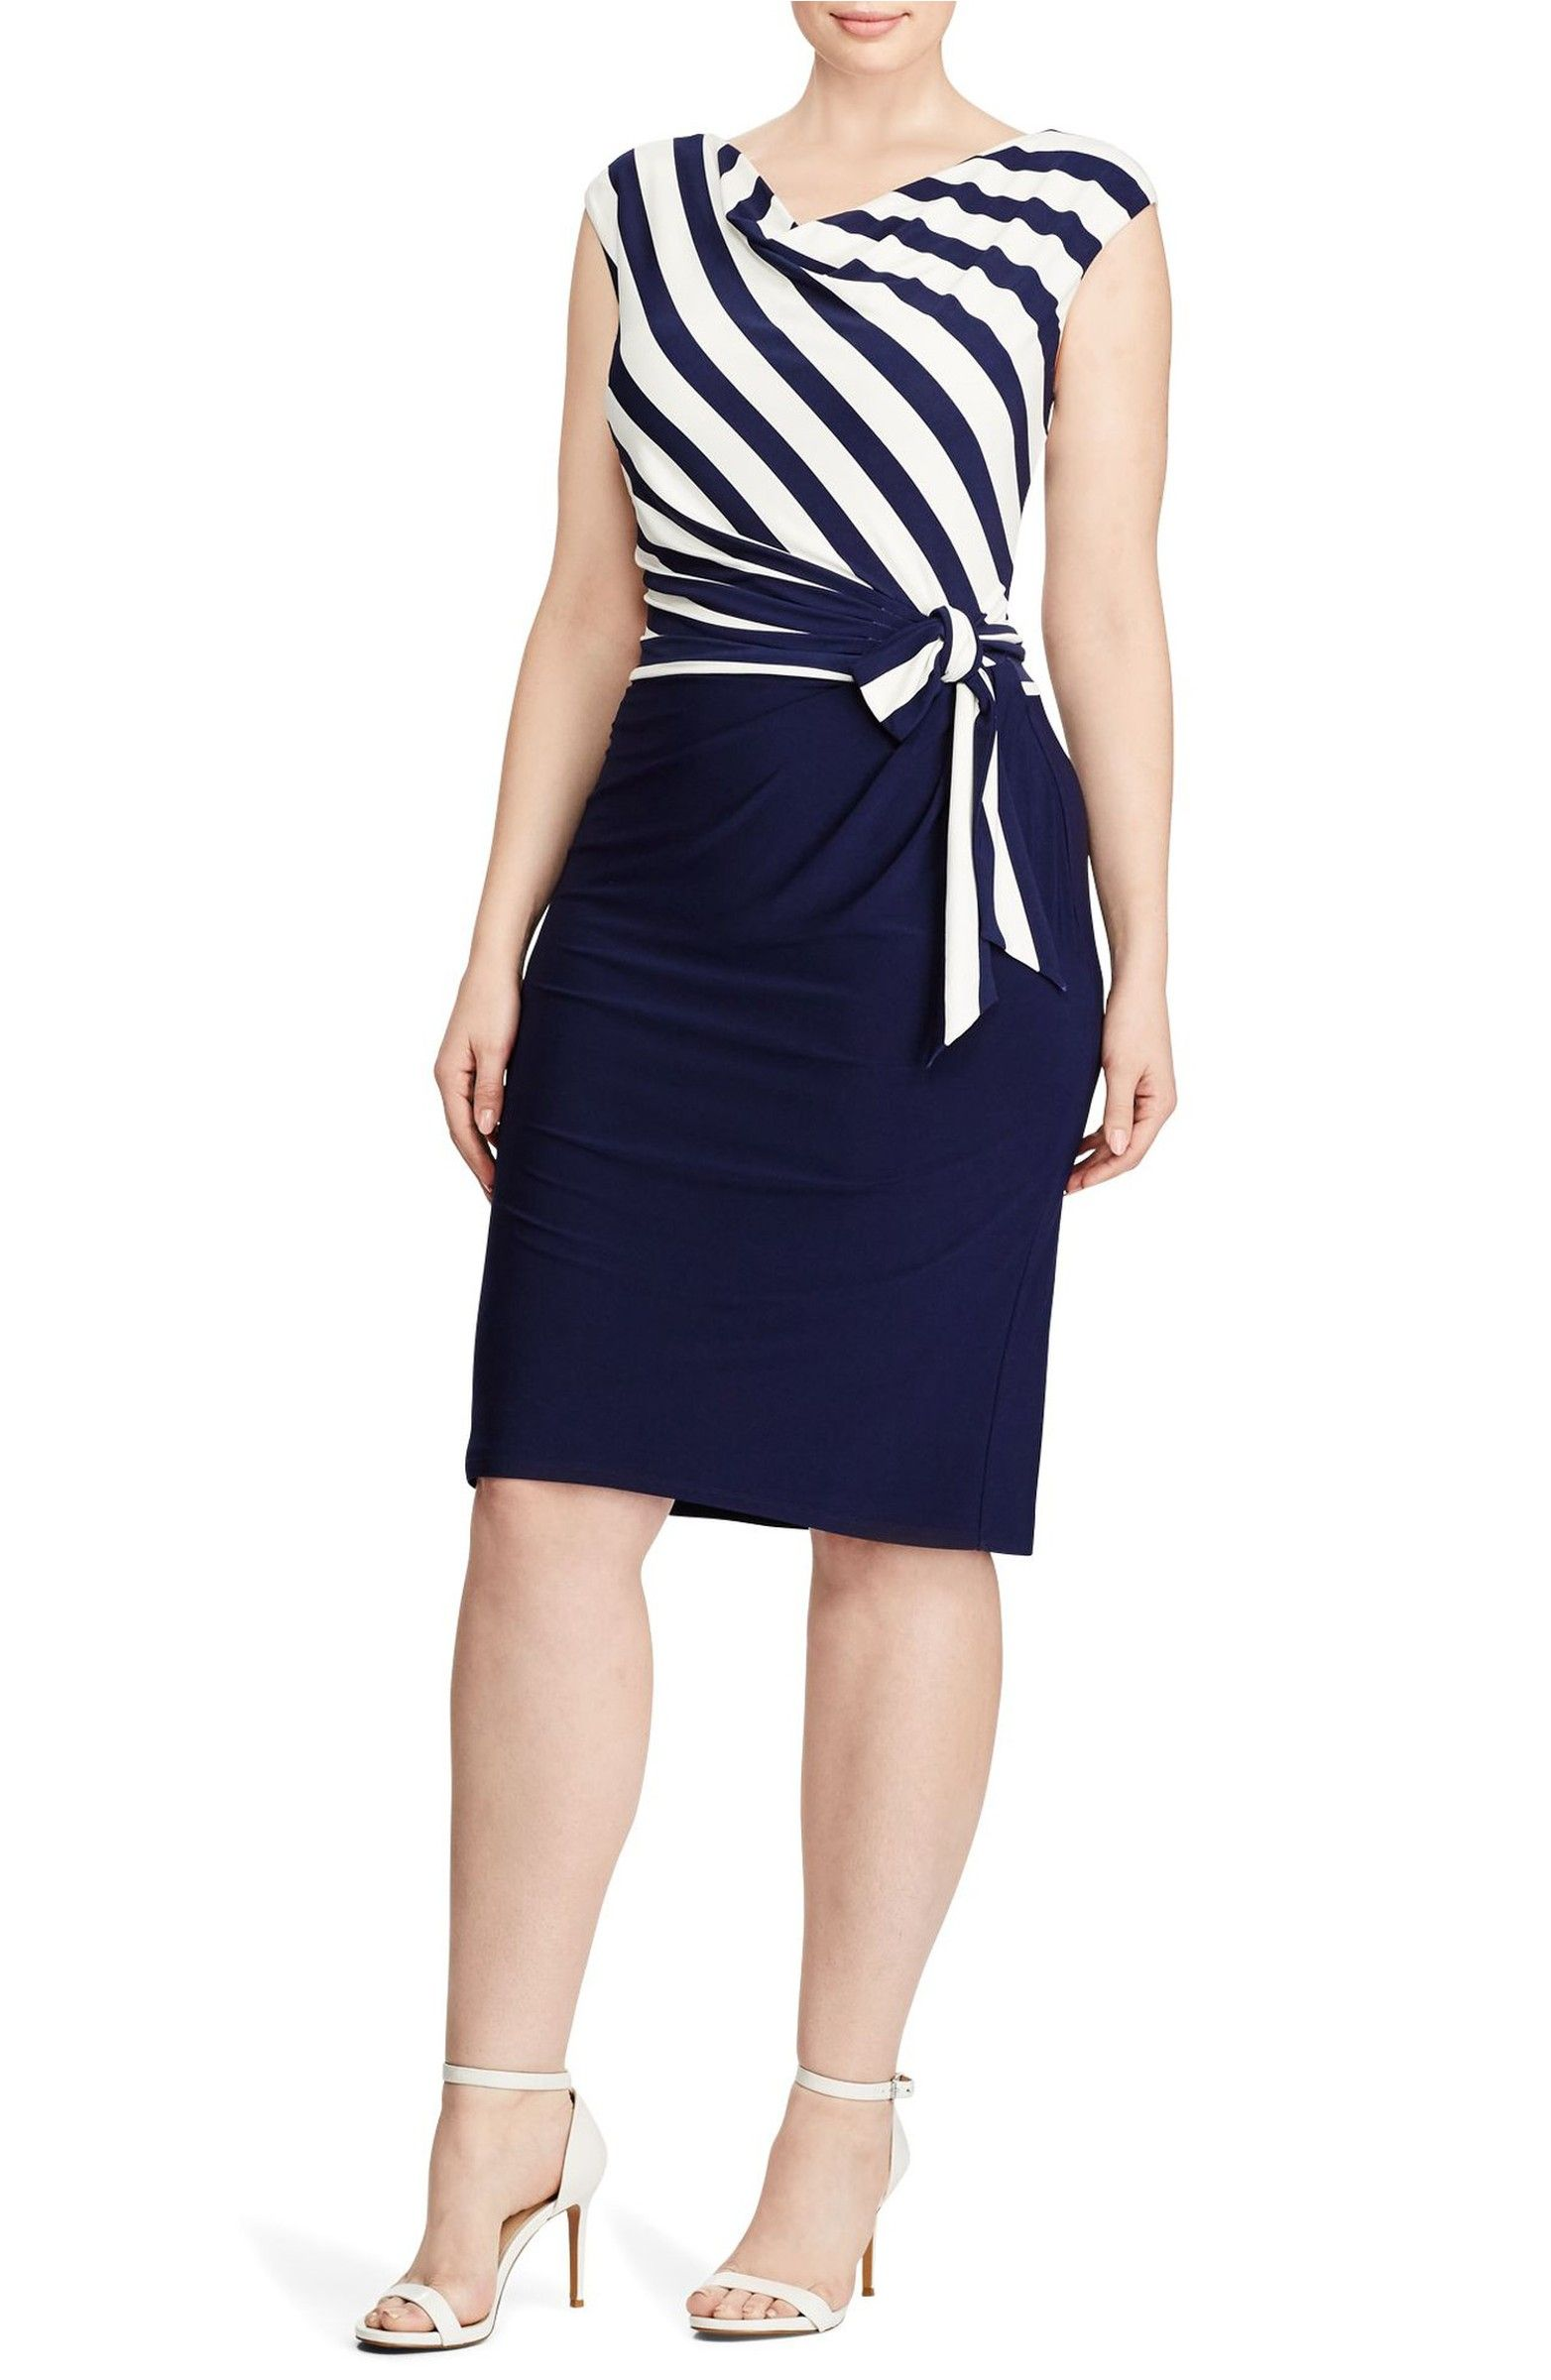 Main Image Lauren Ralph Lauren Sadira Colorblock Dress Plus Size